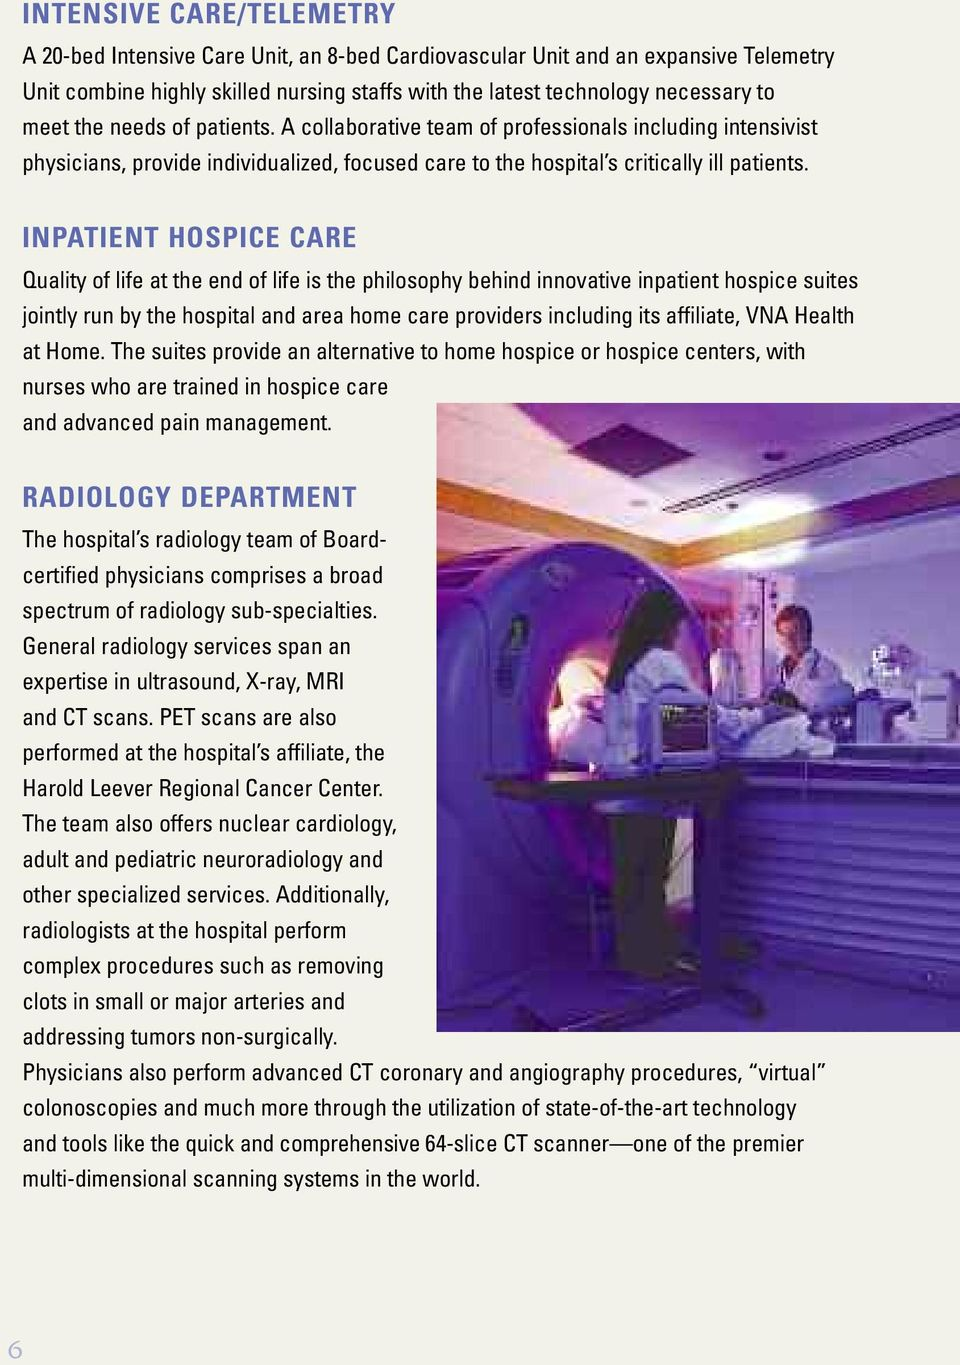 INPATIENT HOSPICE CARE Quality of life at the end of life is the philosophy behind innovative inpatient hospice suites jointly run by the hospital and area home care providers including its